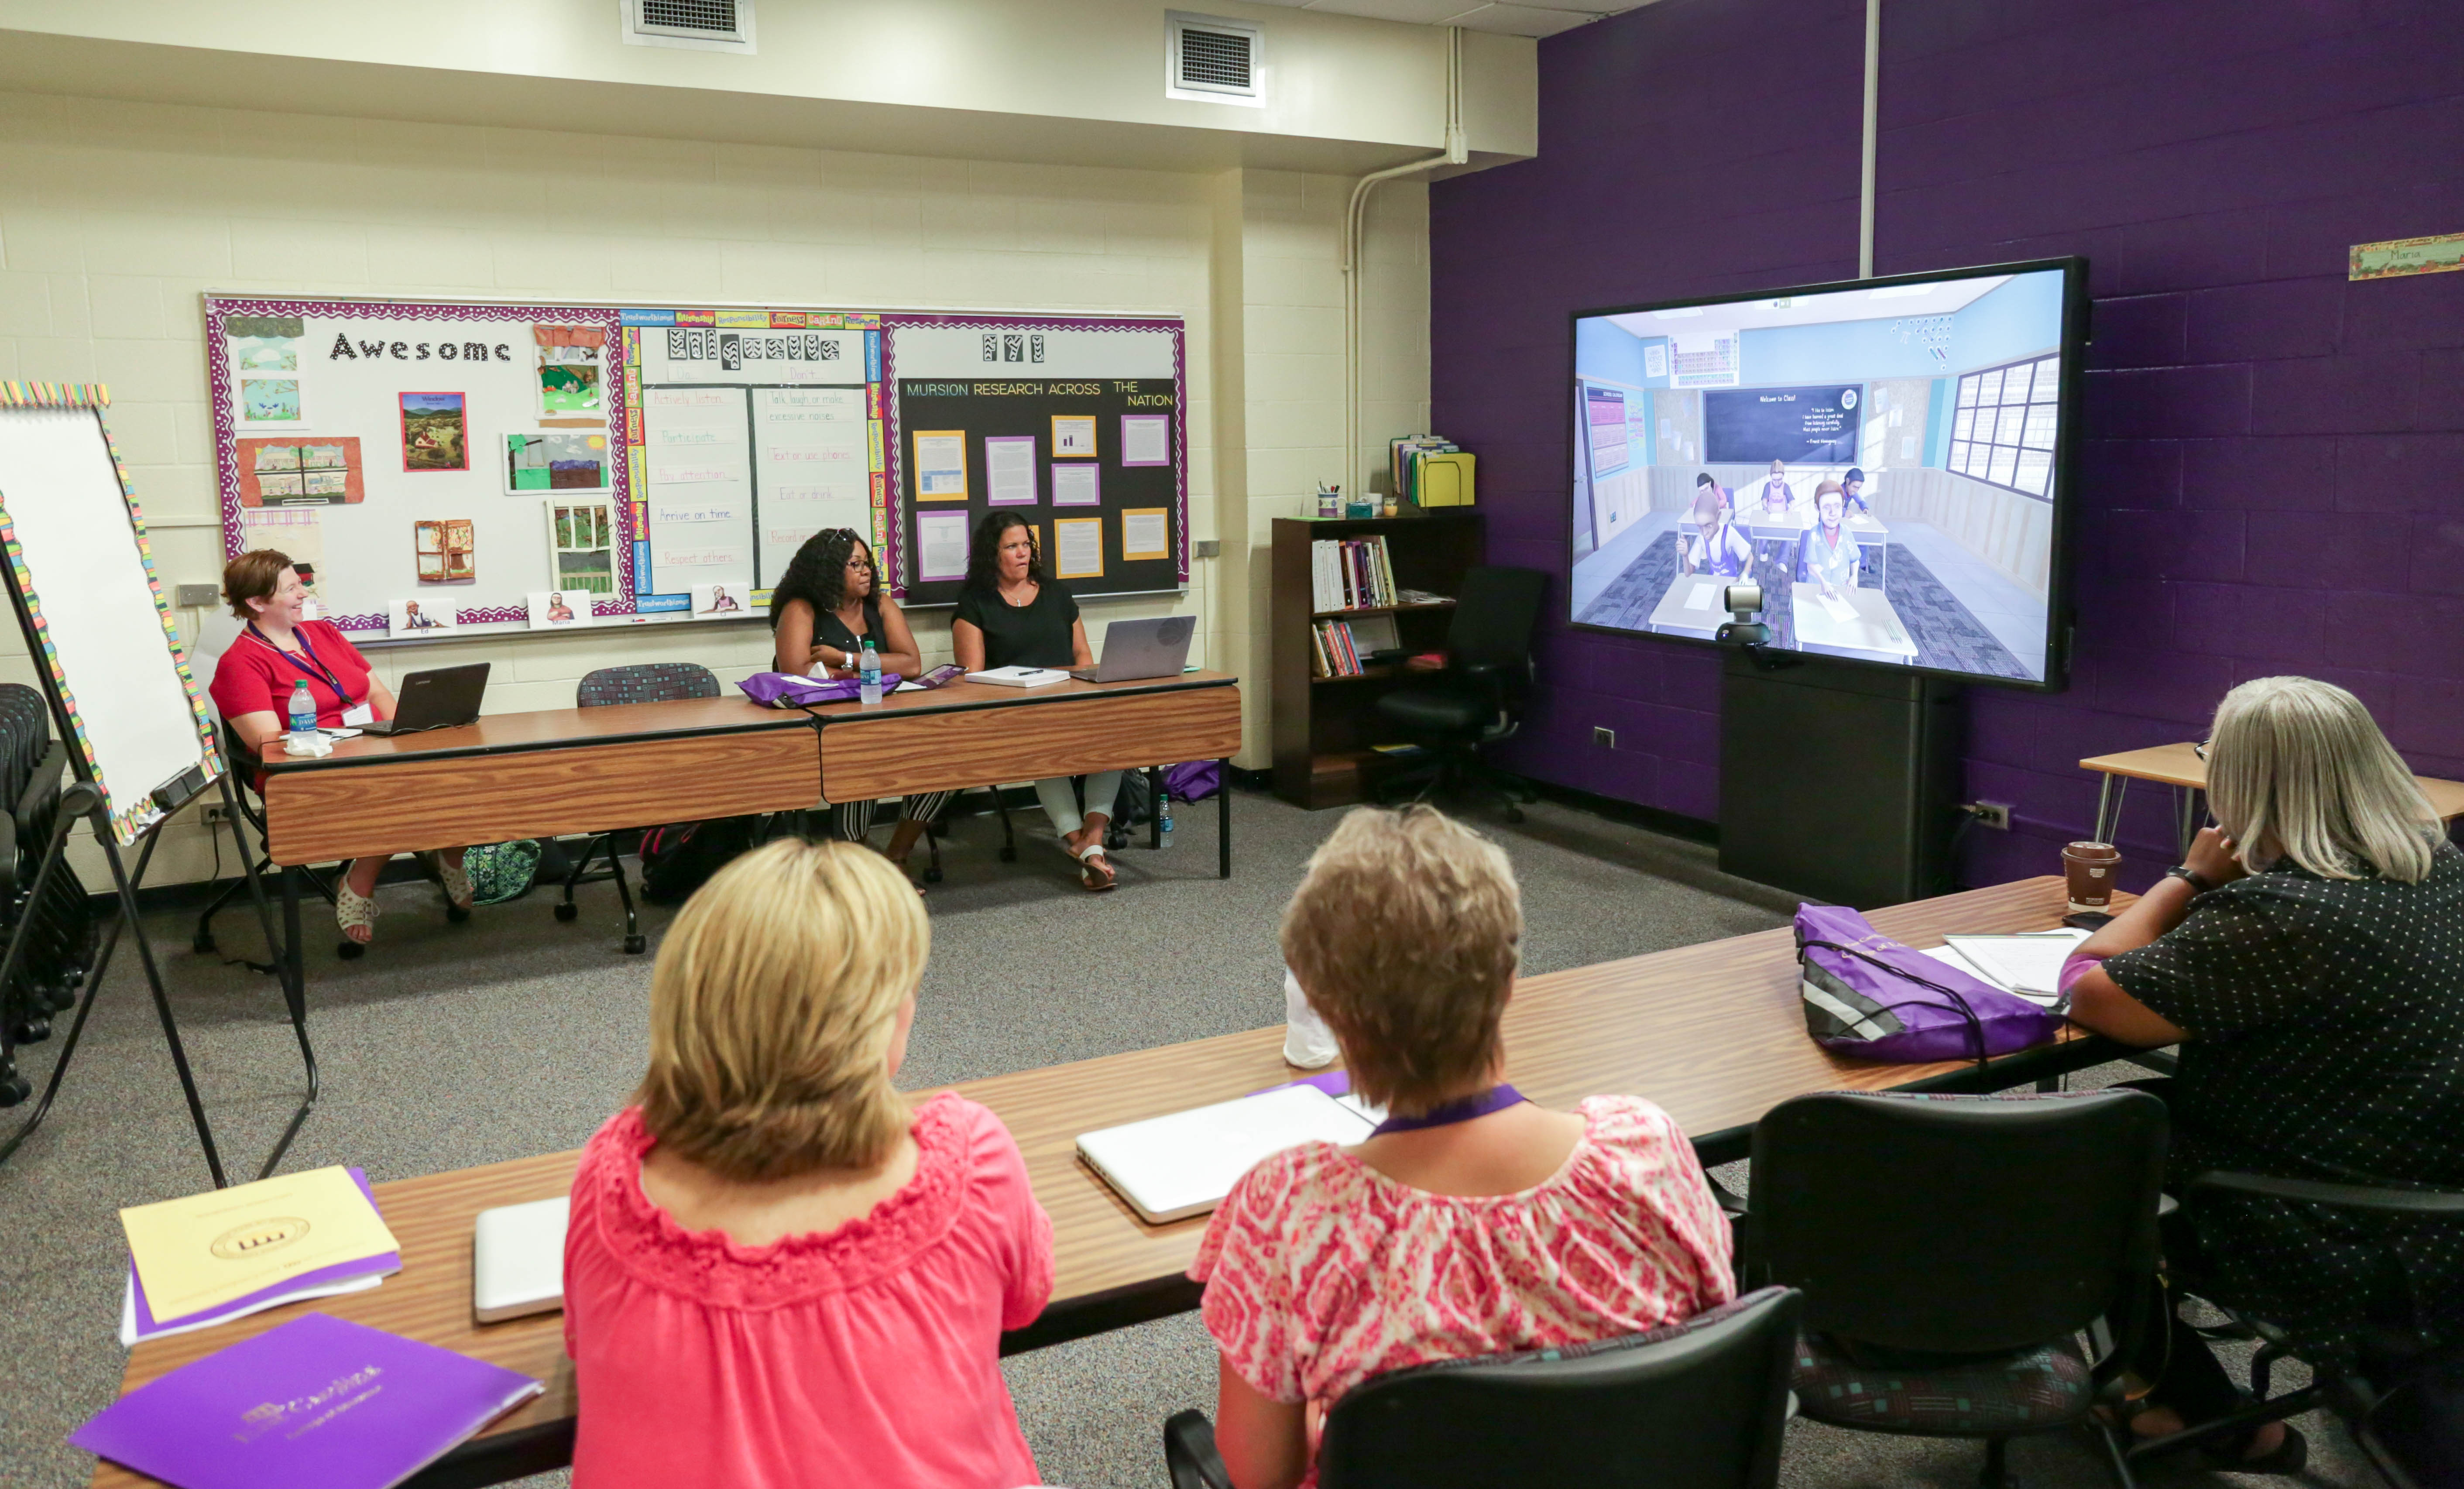 Representatives from eastern North Carolina school districts observe Mursion at work on Thursday, July 27.